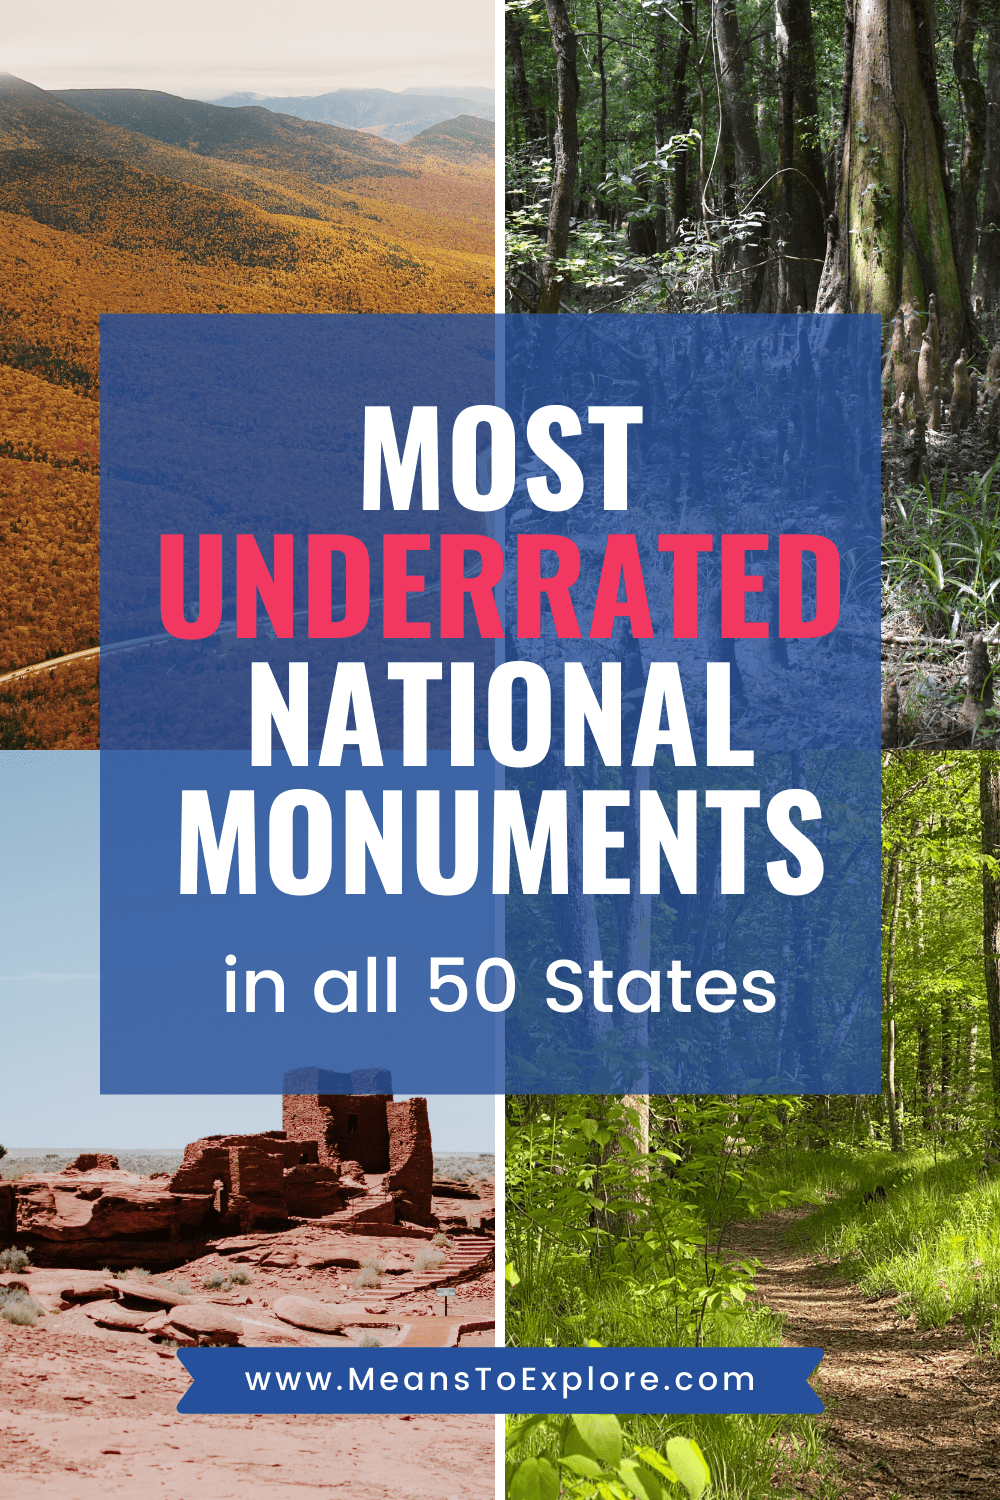 Most Underrated National Monuments